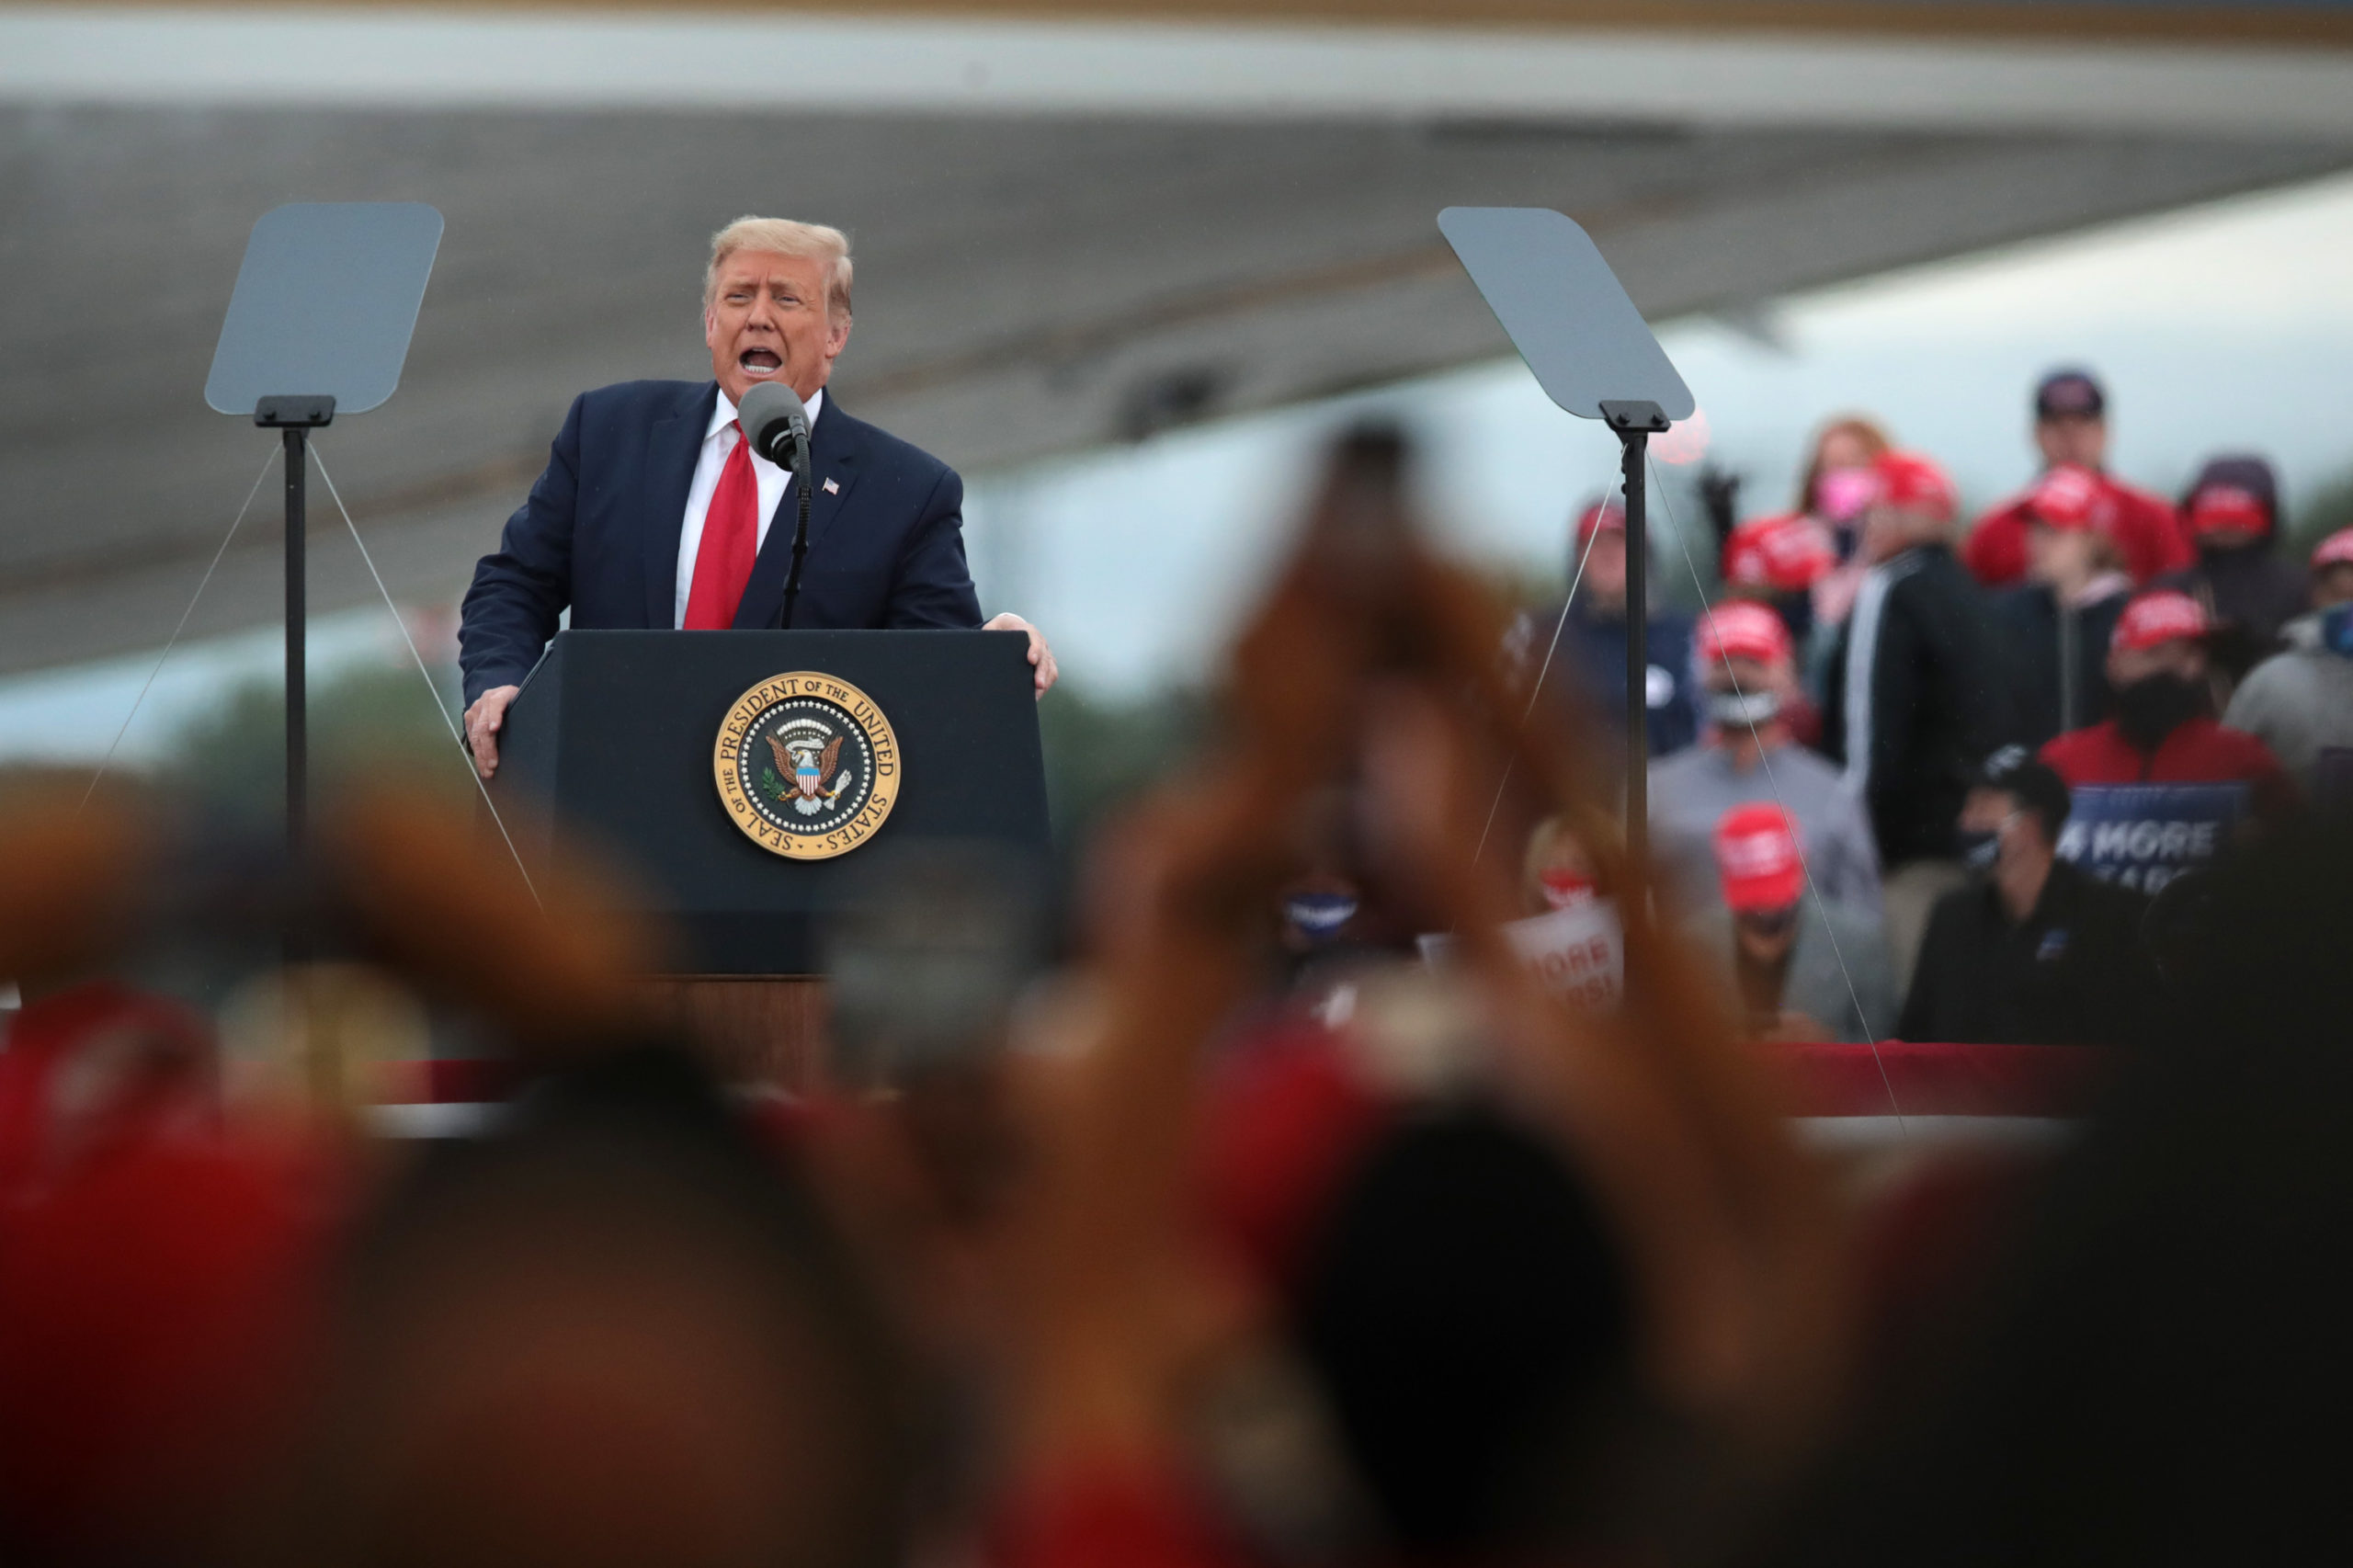 FREELAND, MICHIGAN - SEPTEMBER 10: President Donald Trump speaks to supporters at a rally on September 10, 2020 in Freeland, Michigan. Recent polls have former Vice President Joe Biden, who visited the battleground state yesterday, with a slight lead in the state. (Photo by Scott Olson/Getty Images)